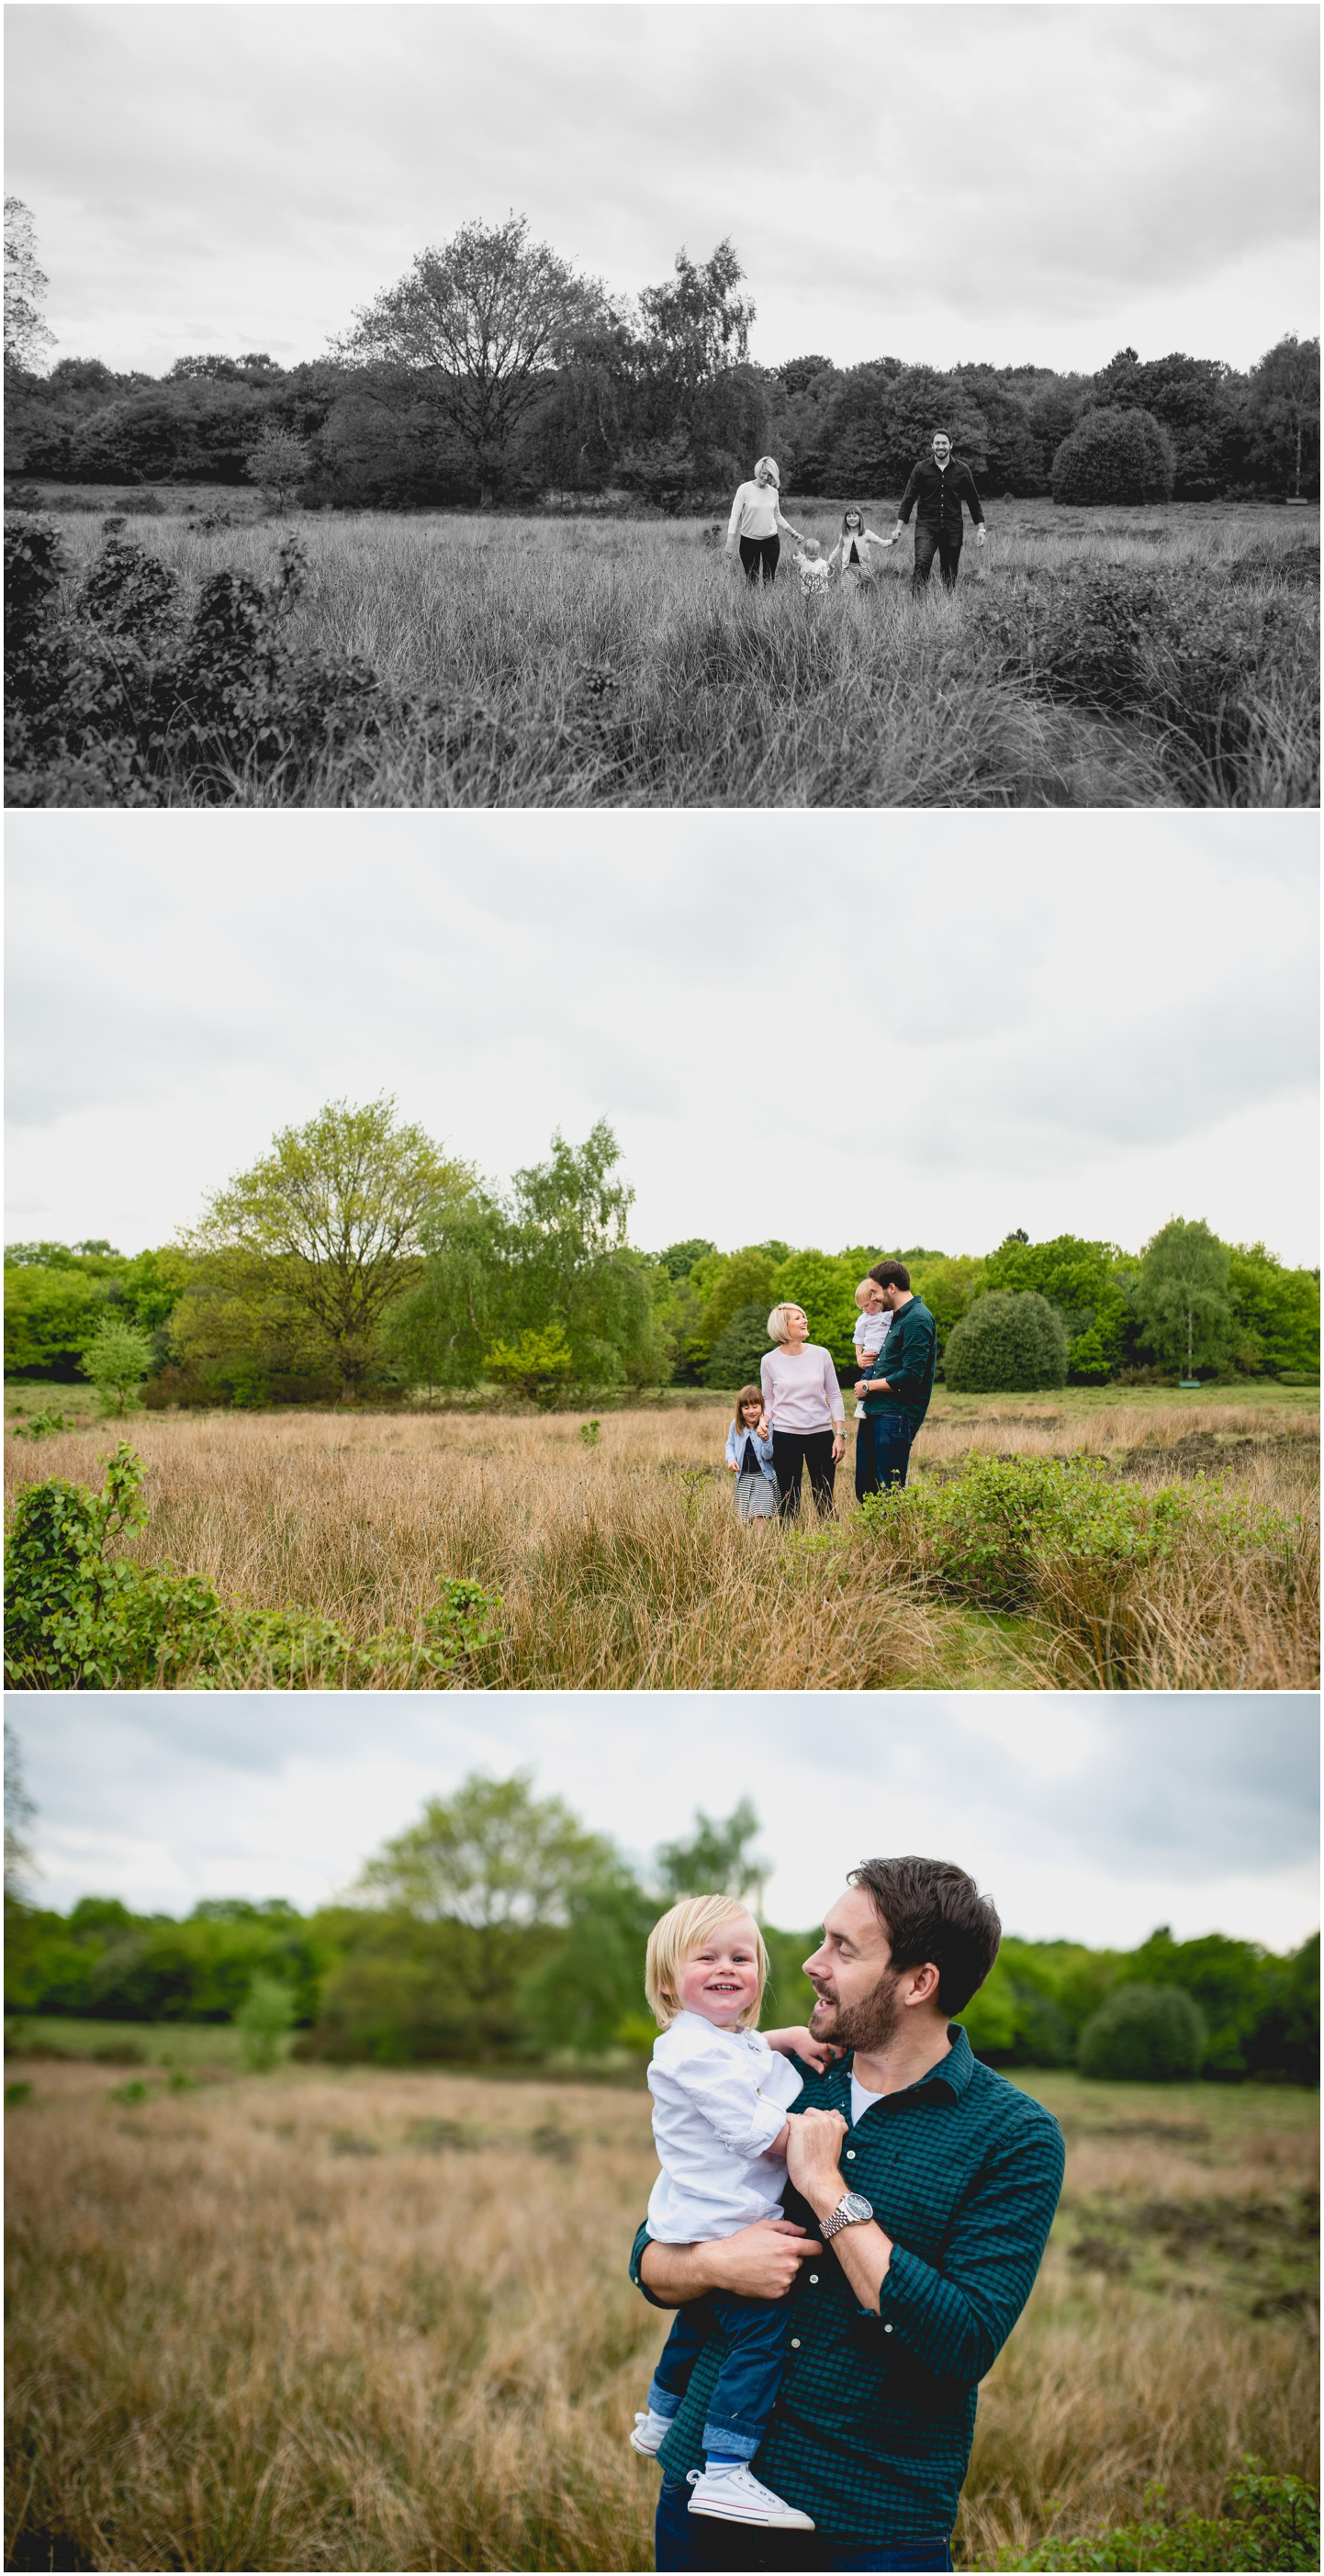 Family shoot in Sutton Park by Lisa Carpenter, West Midlands Sutton Coldfield photographer